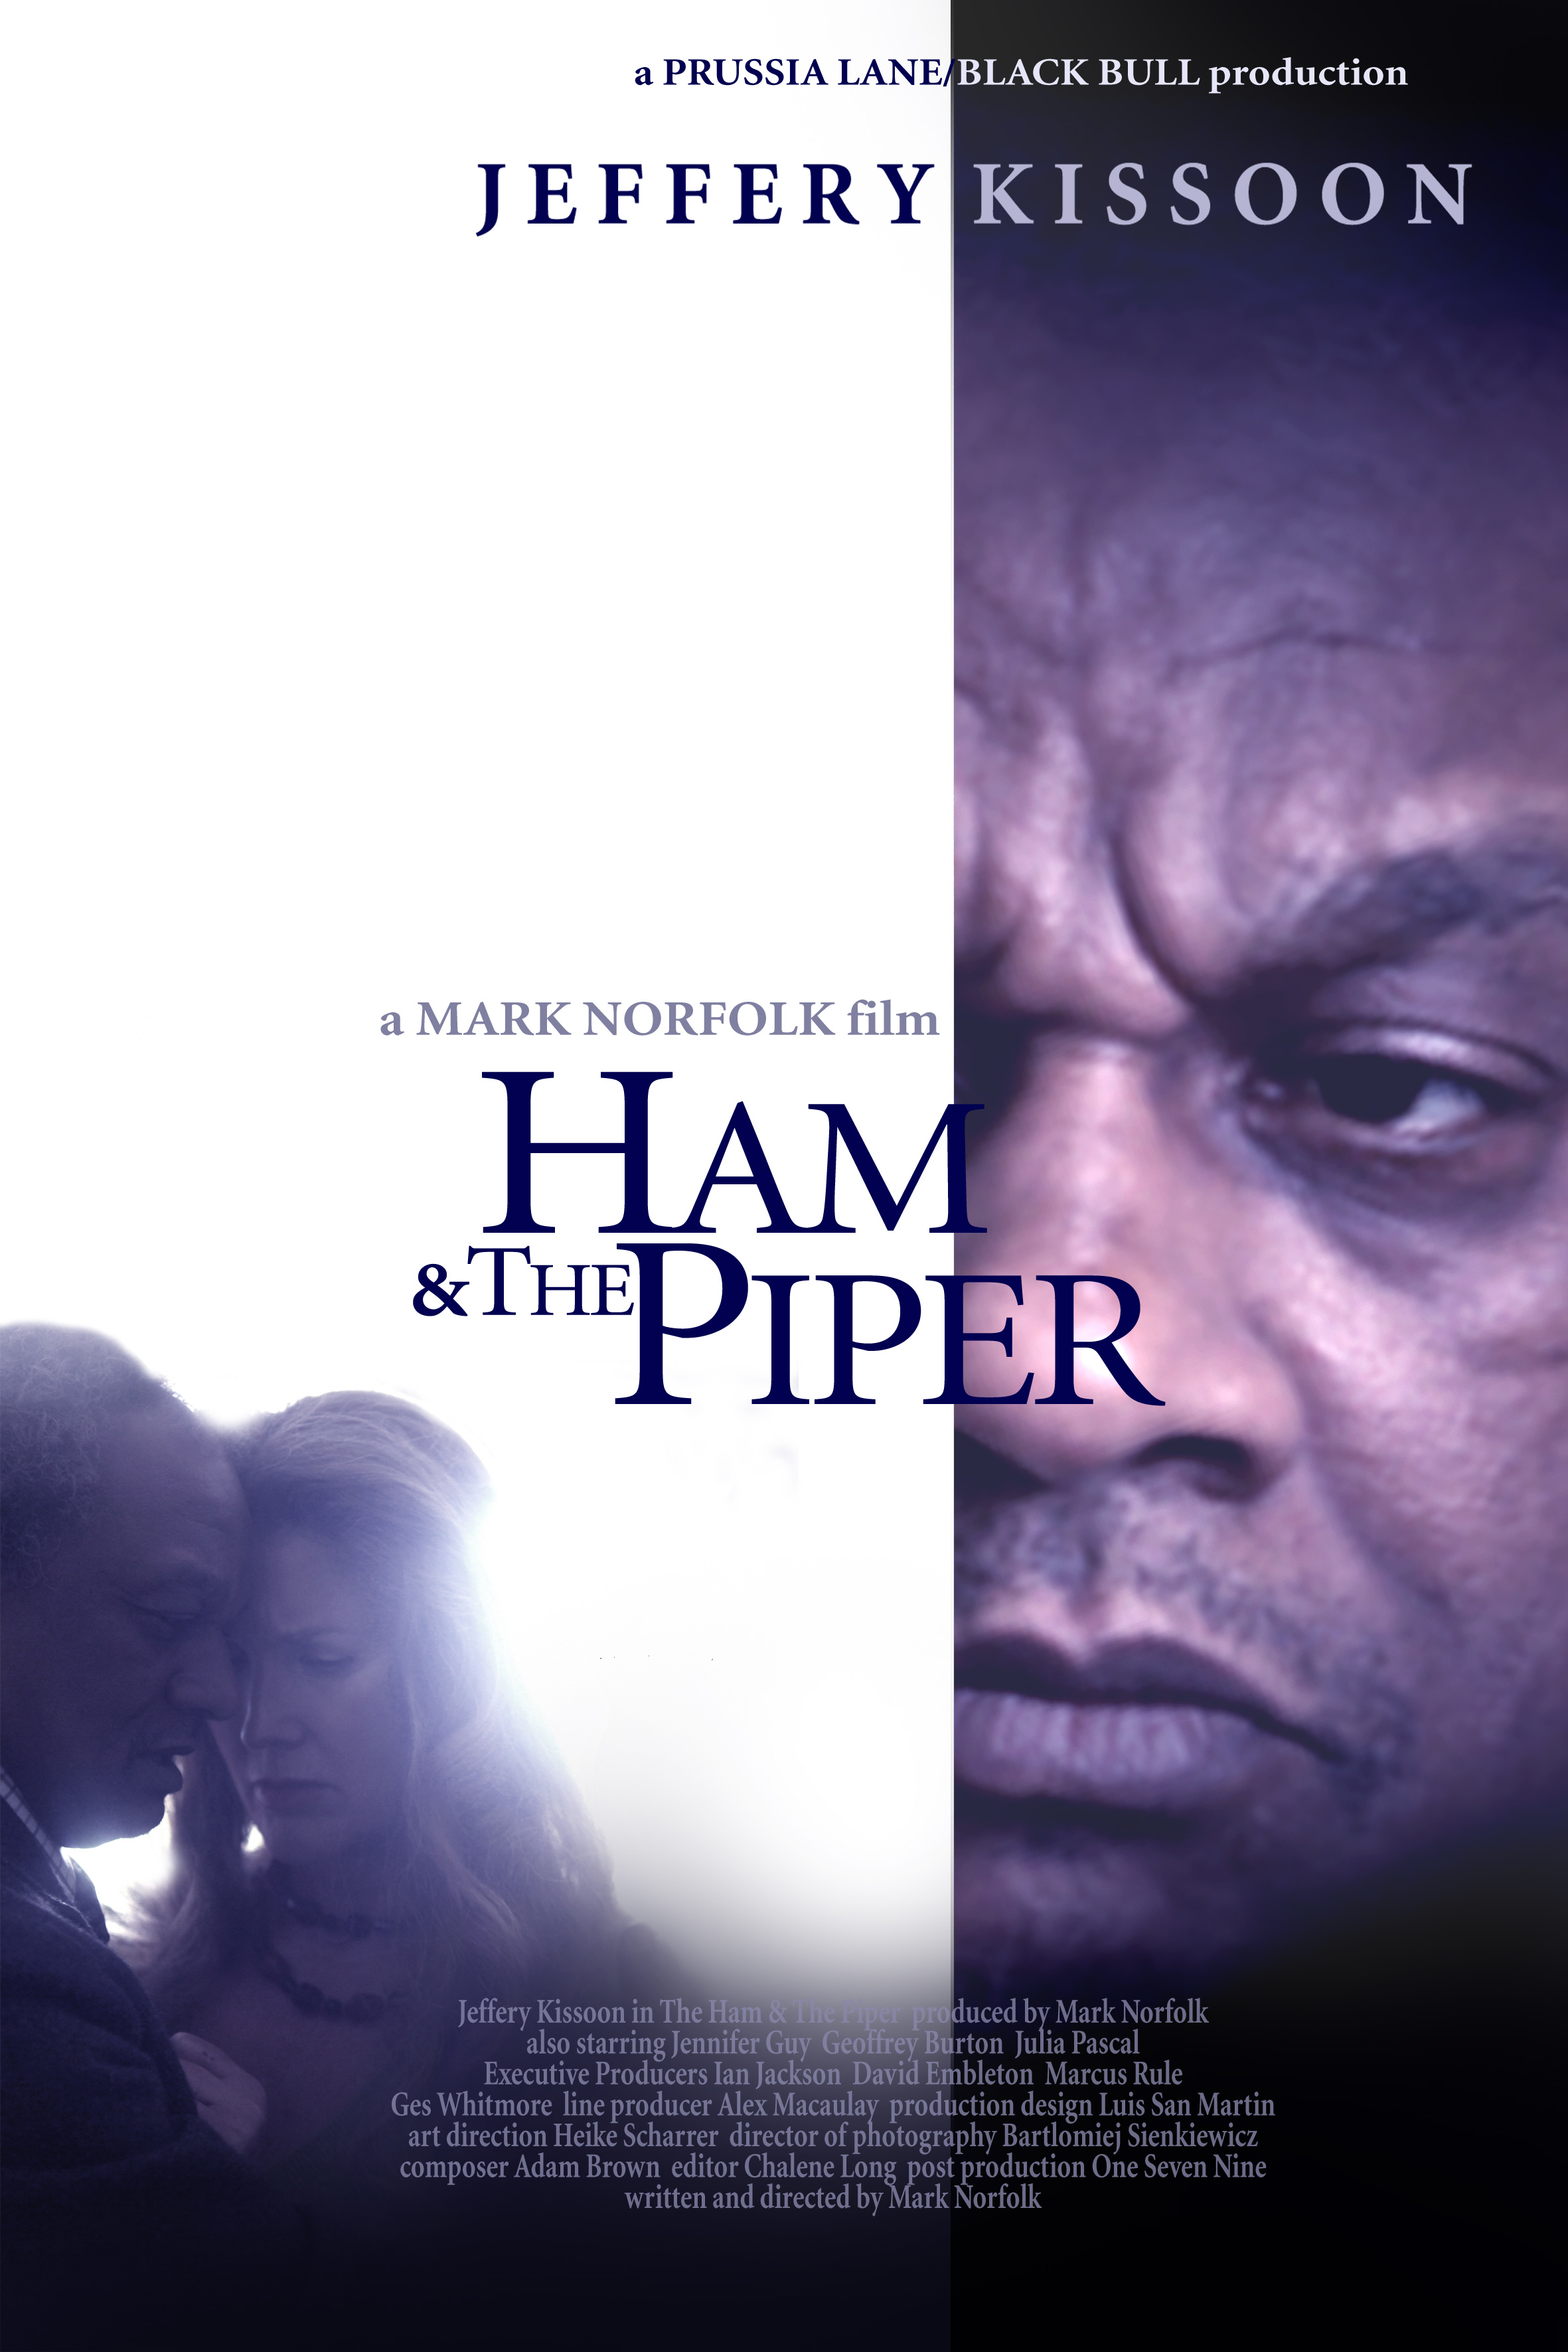 Ham and the Piper poster